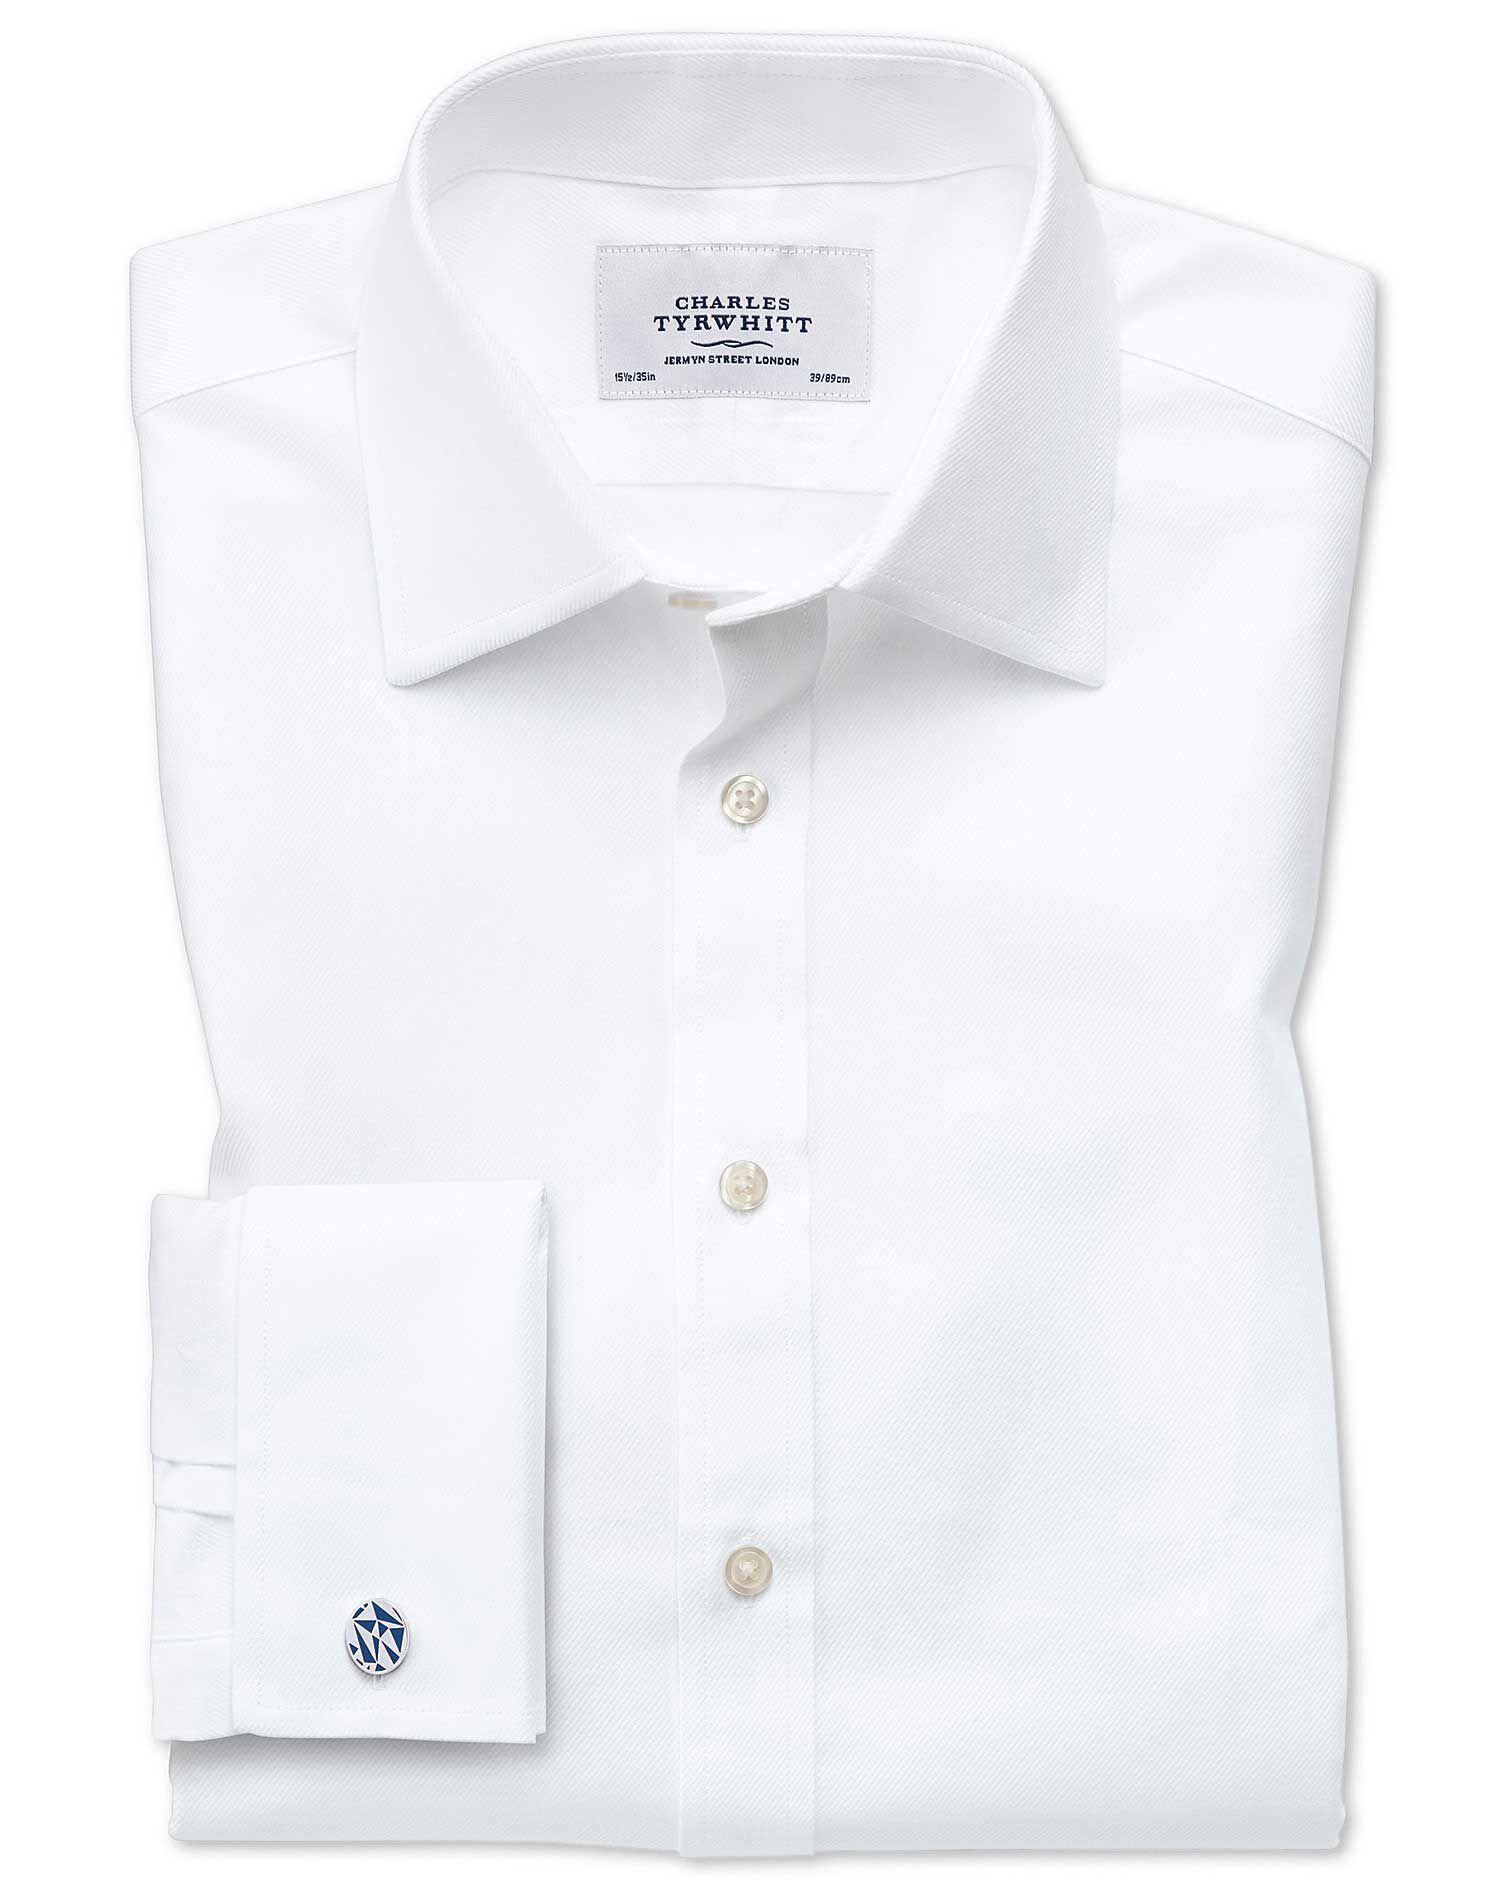 Classic Fit Egyptian Cotton Cavalry Twill White Formal Shirt Single Cuff Size 19/37 by Charles Tyrwh